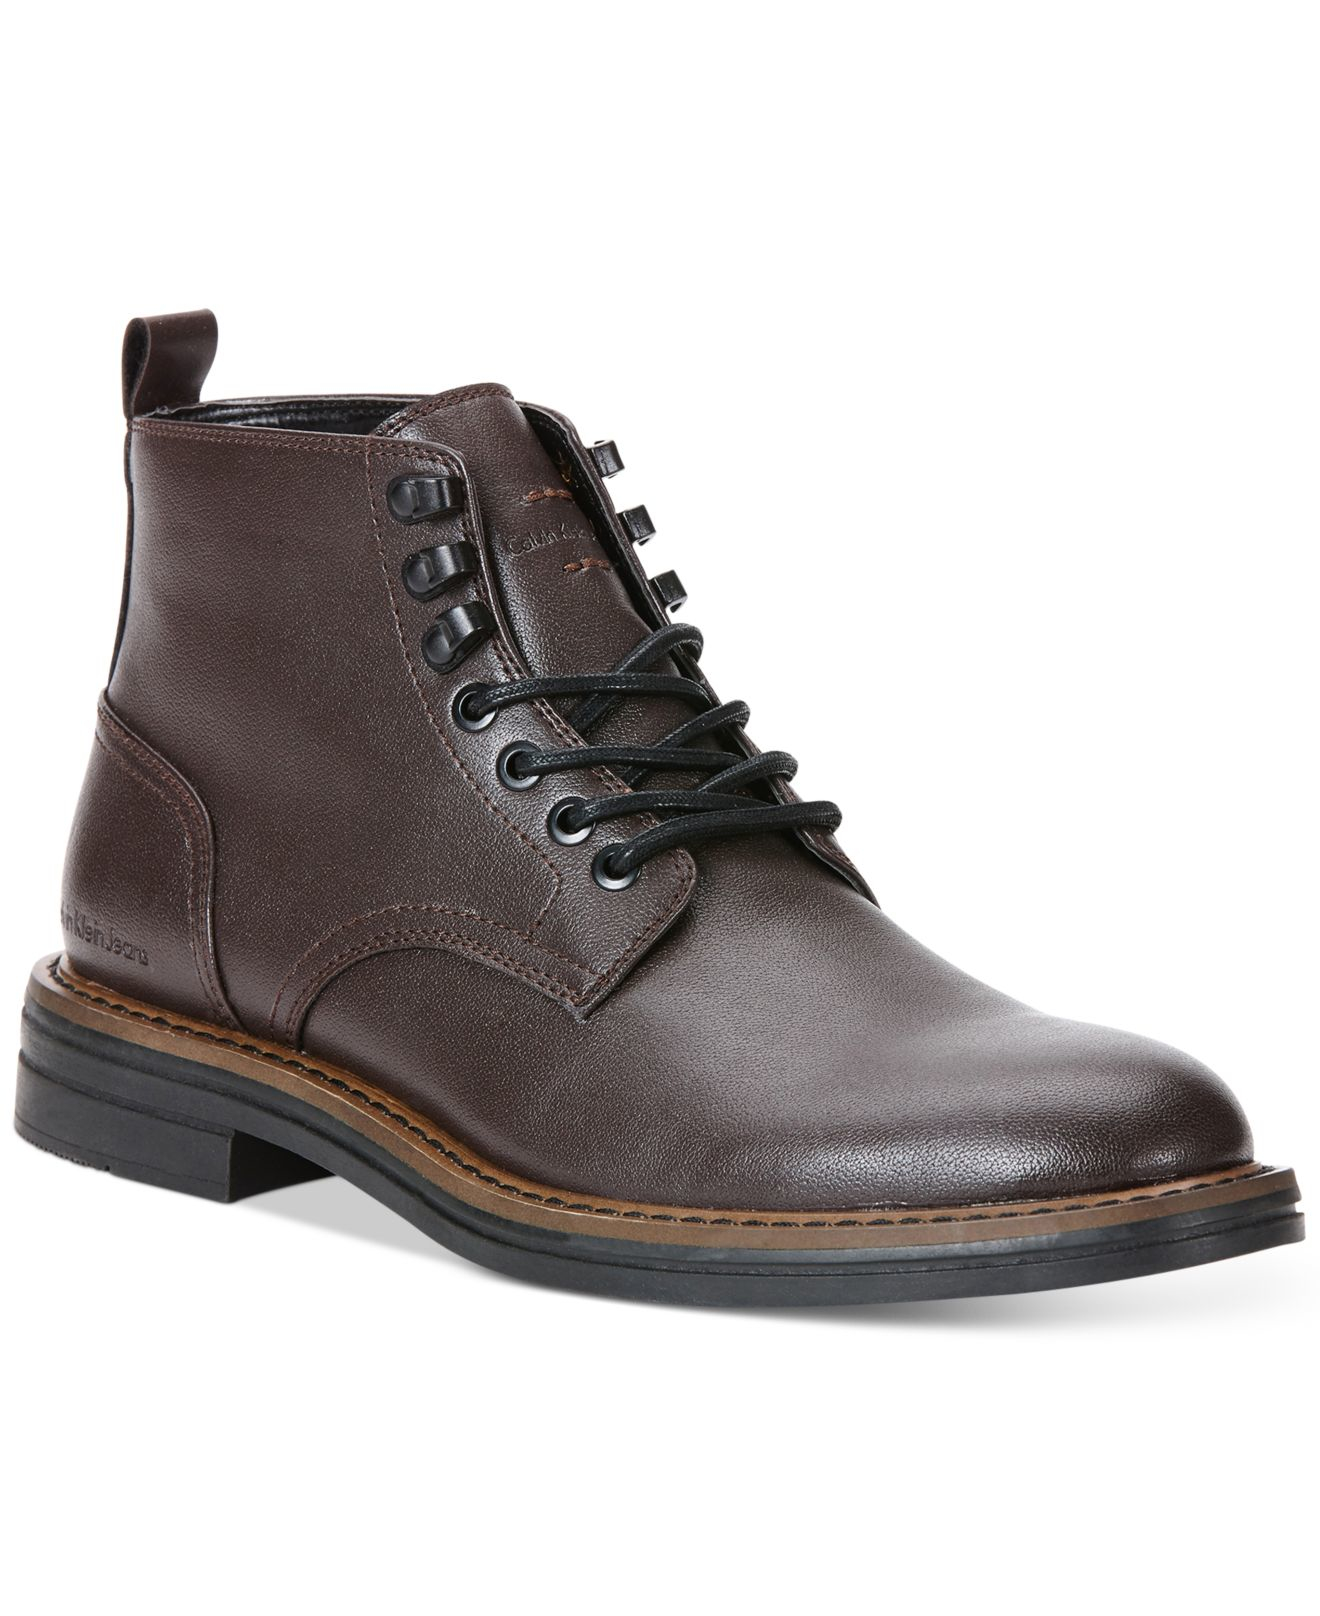 Calvin Klein Jeans Edmond Smooth Boots In Brown For Men Lyst